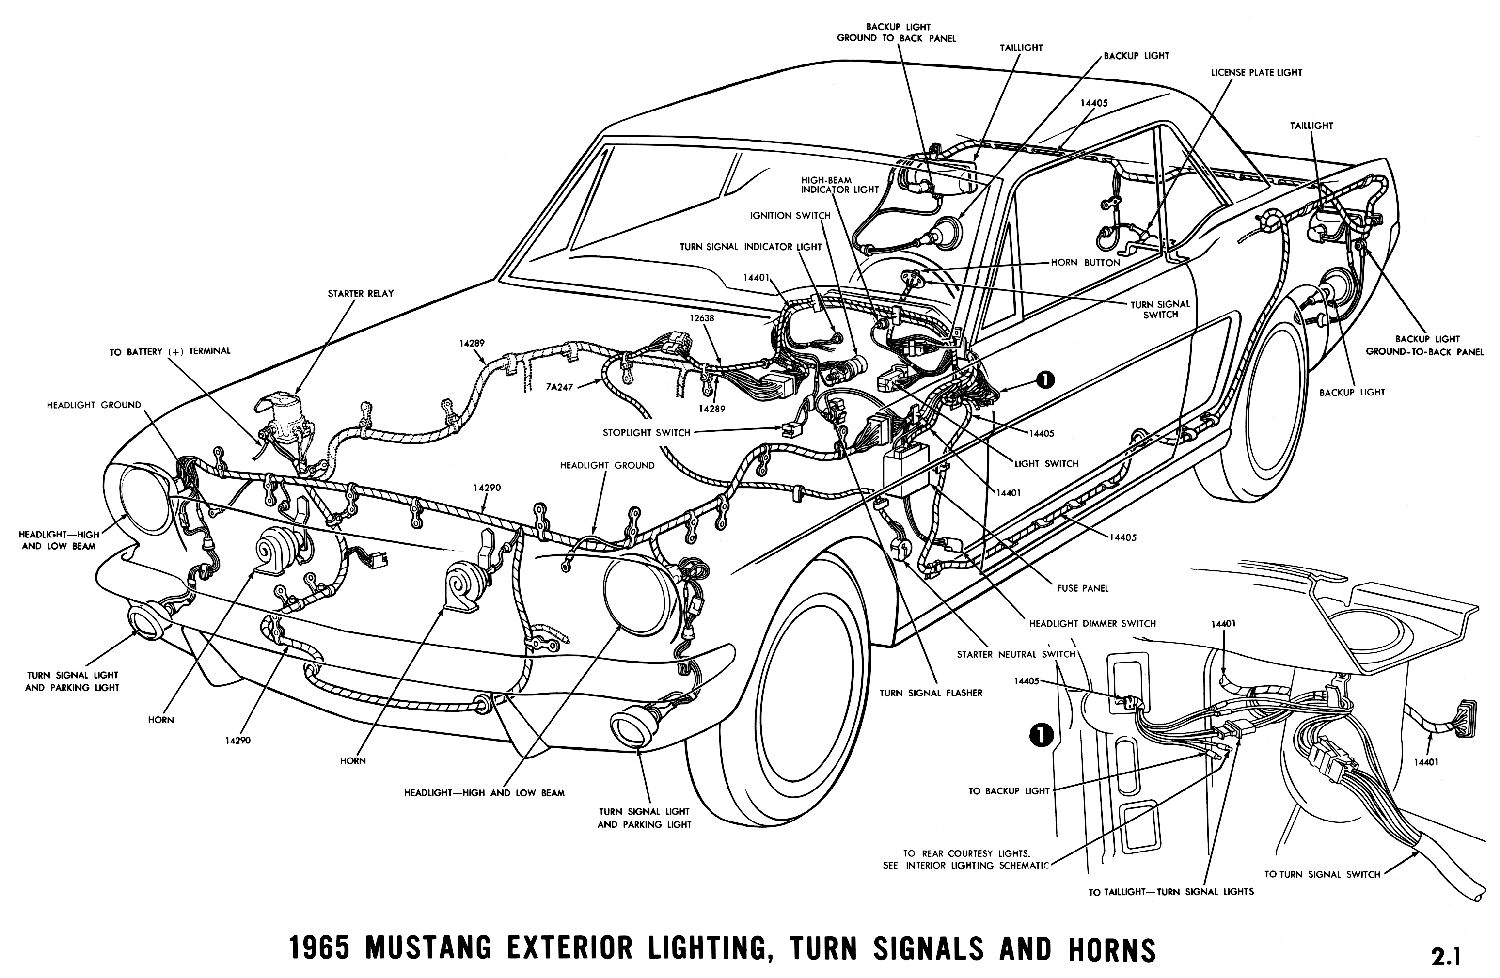 1965 Mustang Wiring Diagrams Average Joe Restoration 66 Ford Diagram Image Details Exterior Lighting Turn Signals And Horns Pictorial Or Schematic